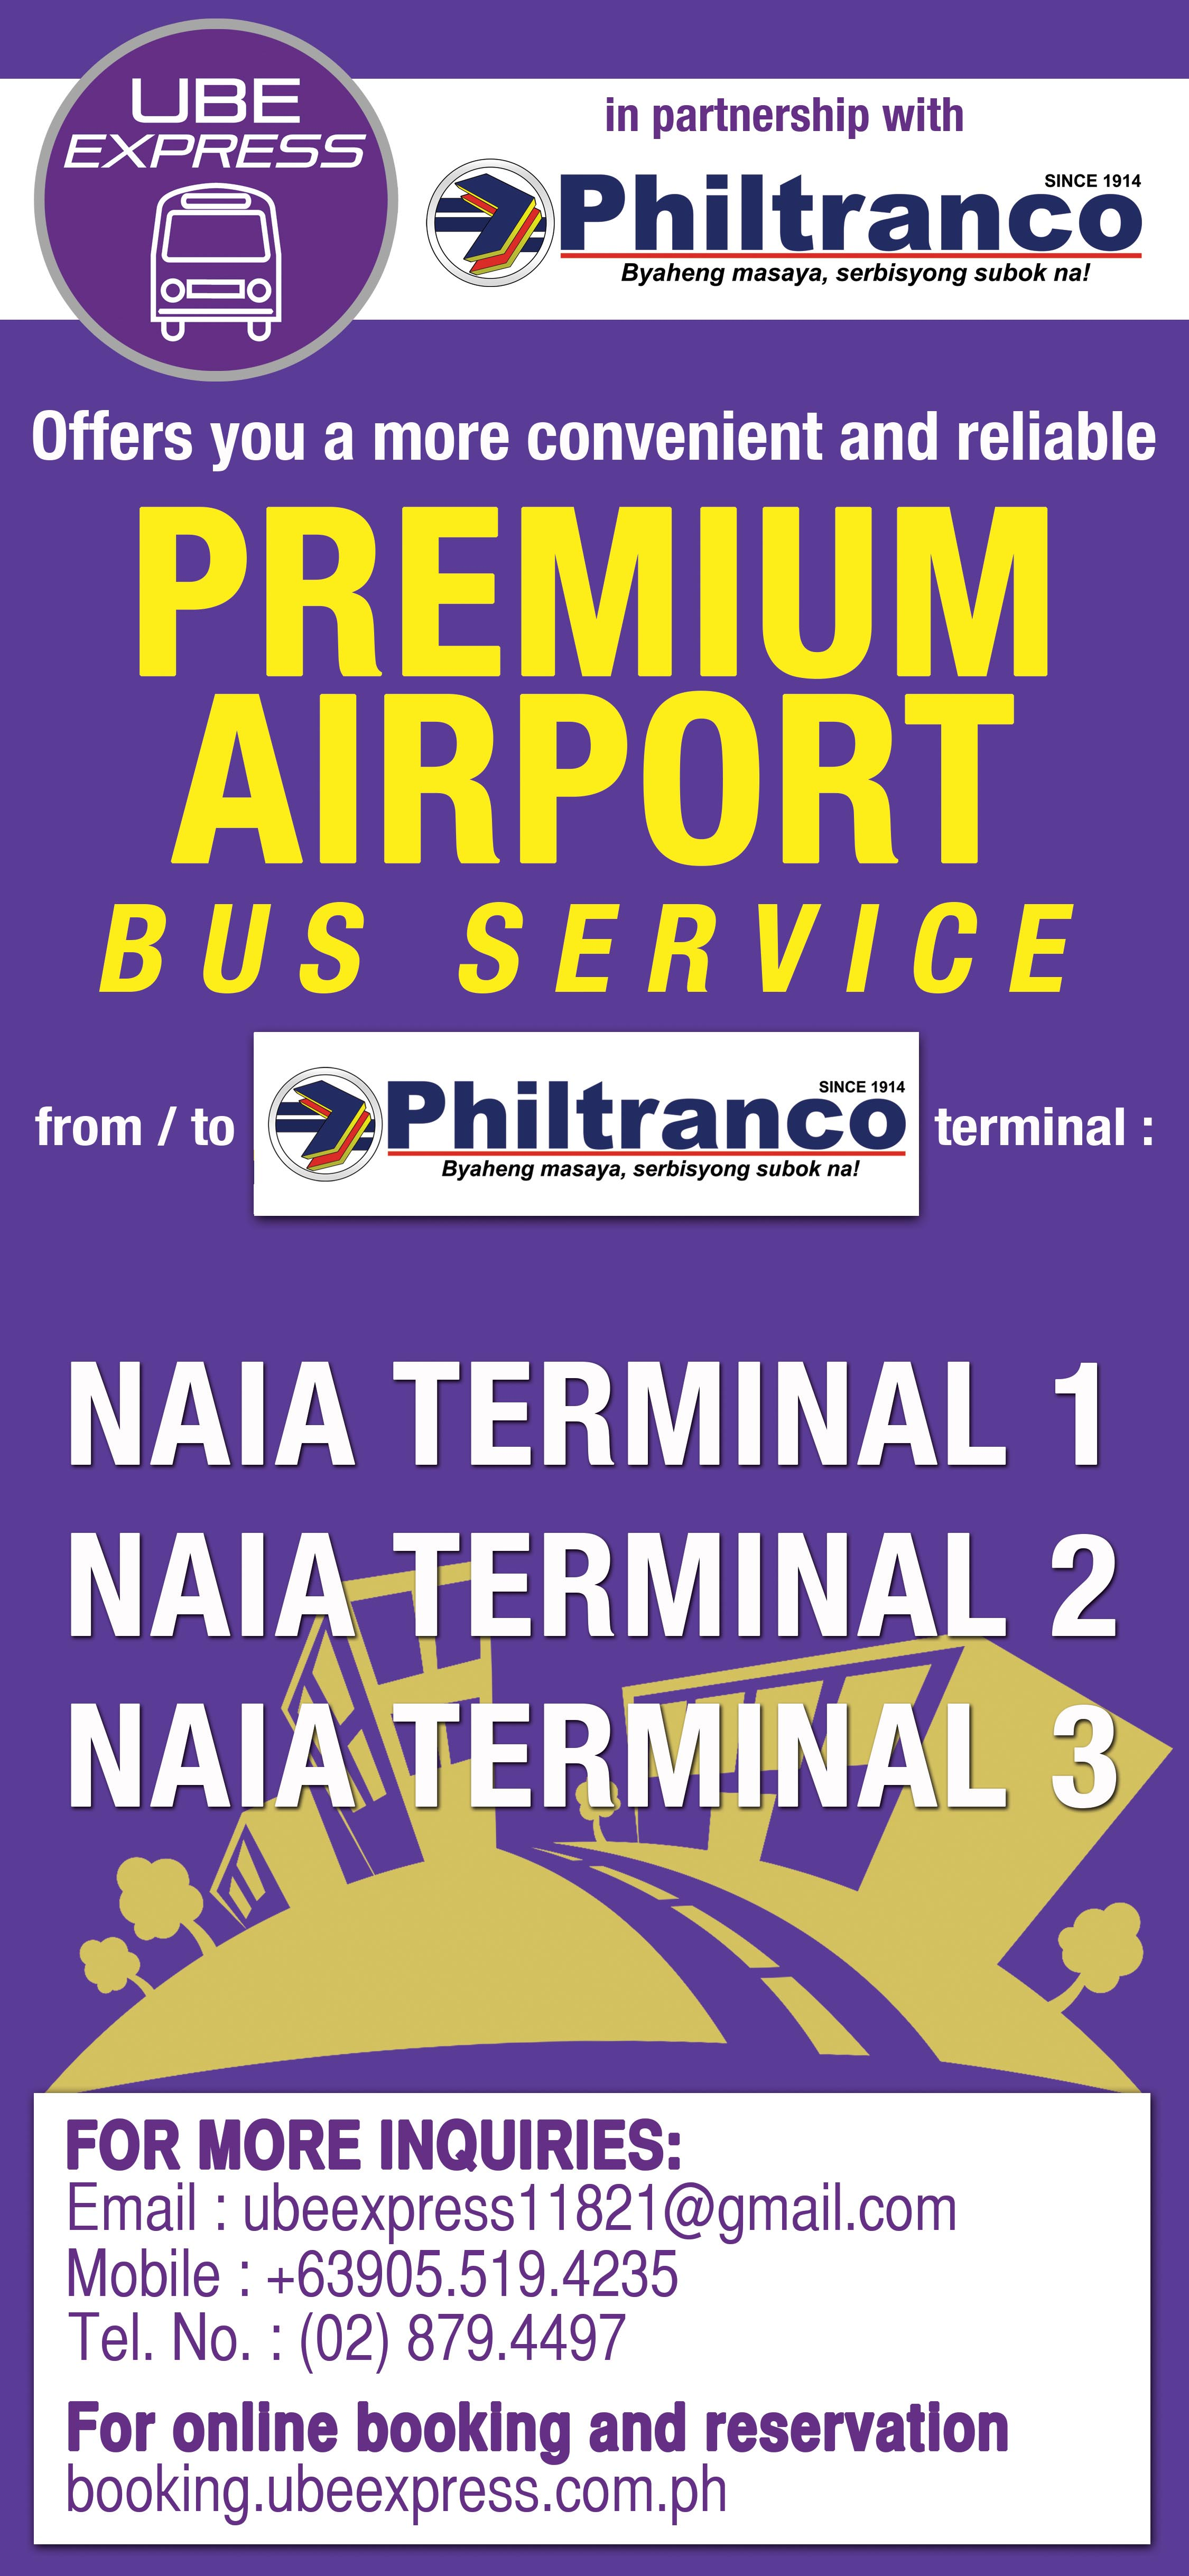 In partnership with Ube Express and Philtranco offers Premium Airport Bus Service